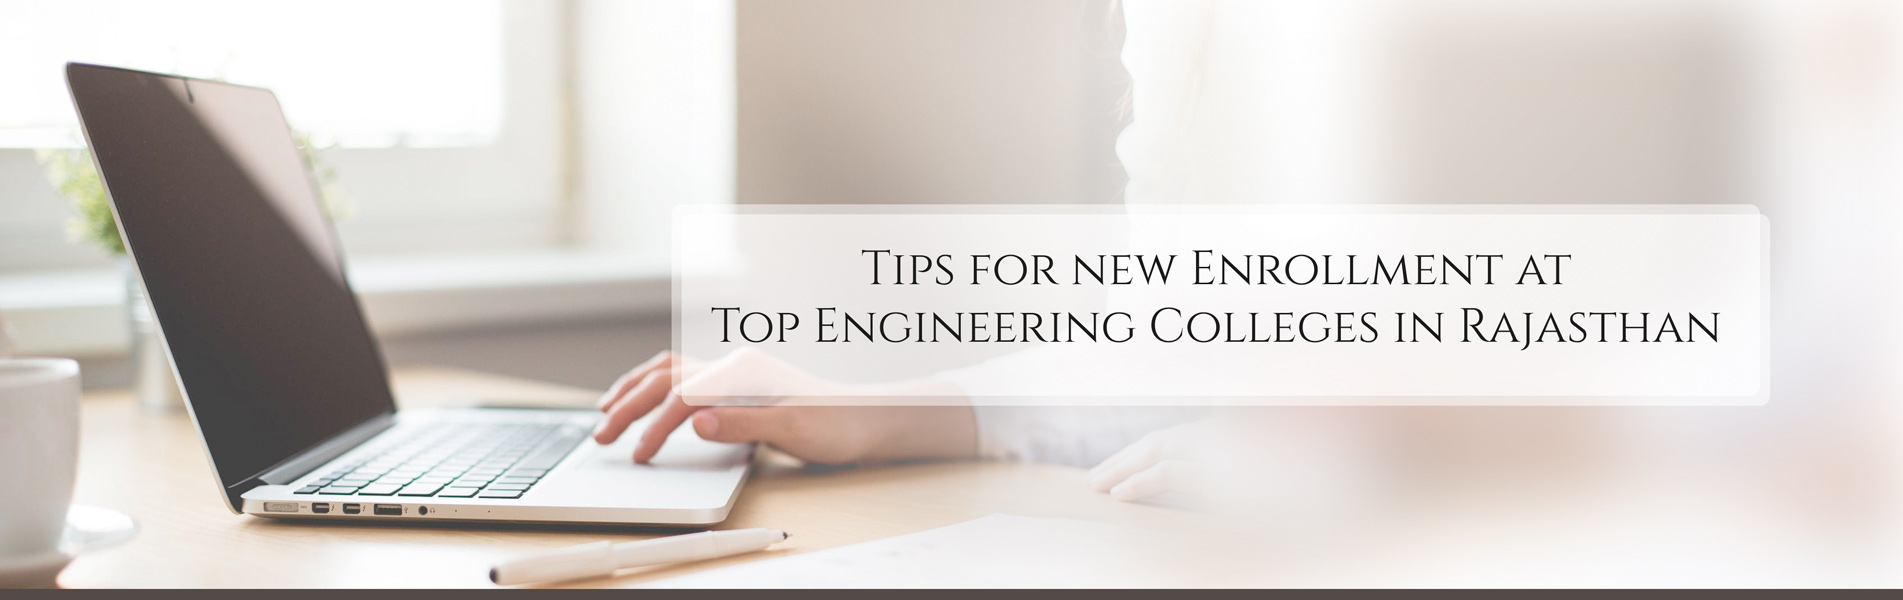 Tips-for-new-Enrollment-at-Top-Engineering-Colleges-in-Rajasthan